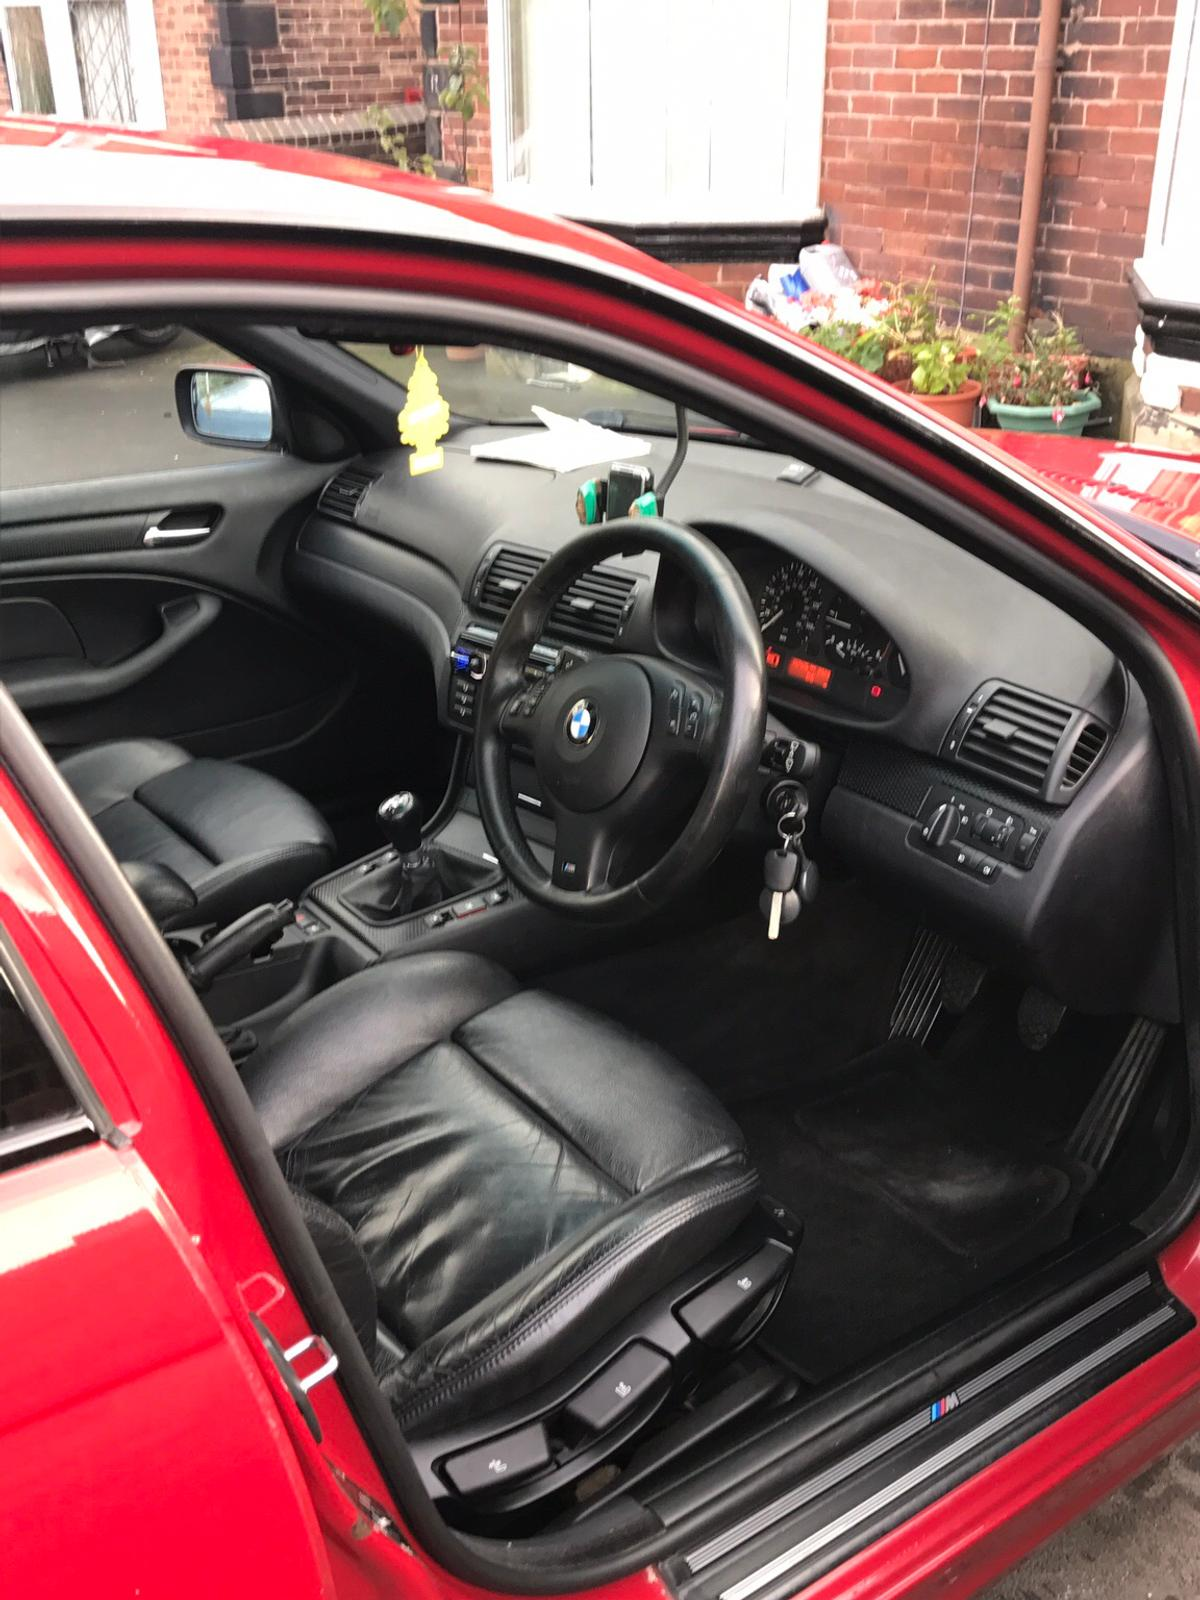 BMW 320d M sport 330 m3 e46 in S3 Sheffield for £1,900 00 for sale